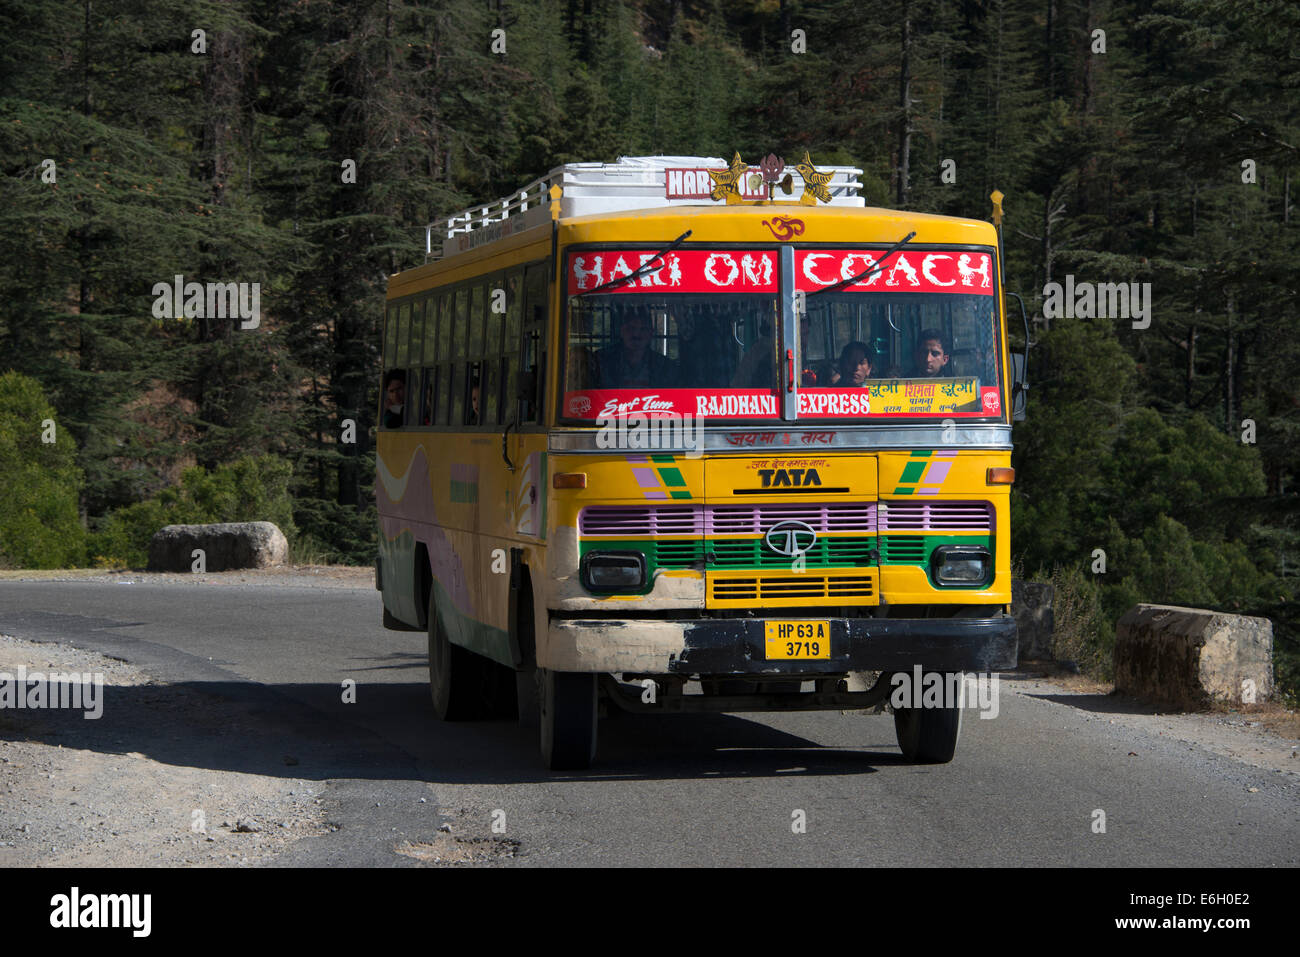 An Indian TATA bus of the Rajdhani Express on a mountain road in the Himalayan foothills in Himachal Pradesh,India - Stock Image